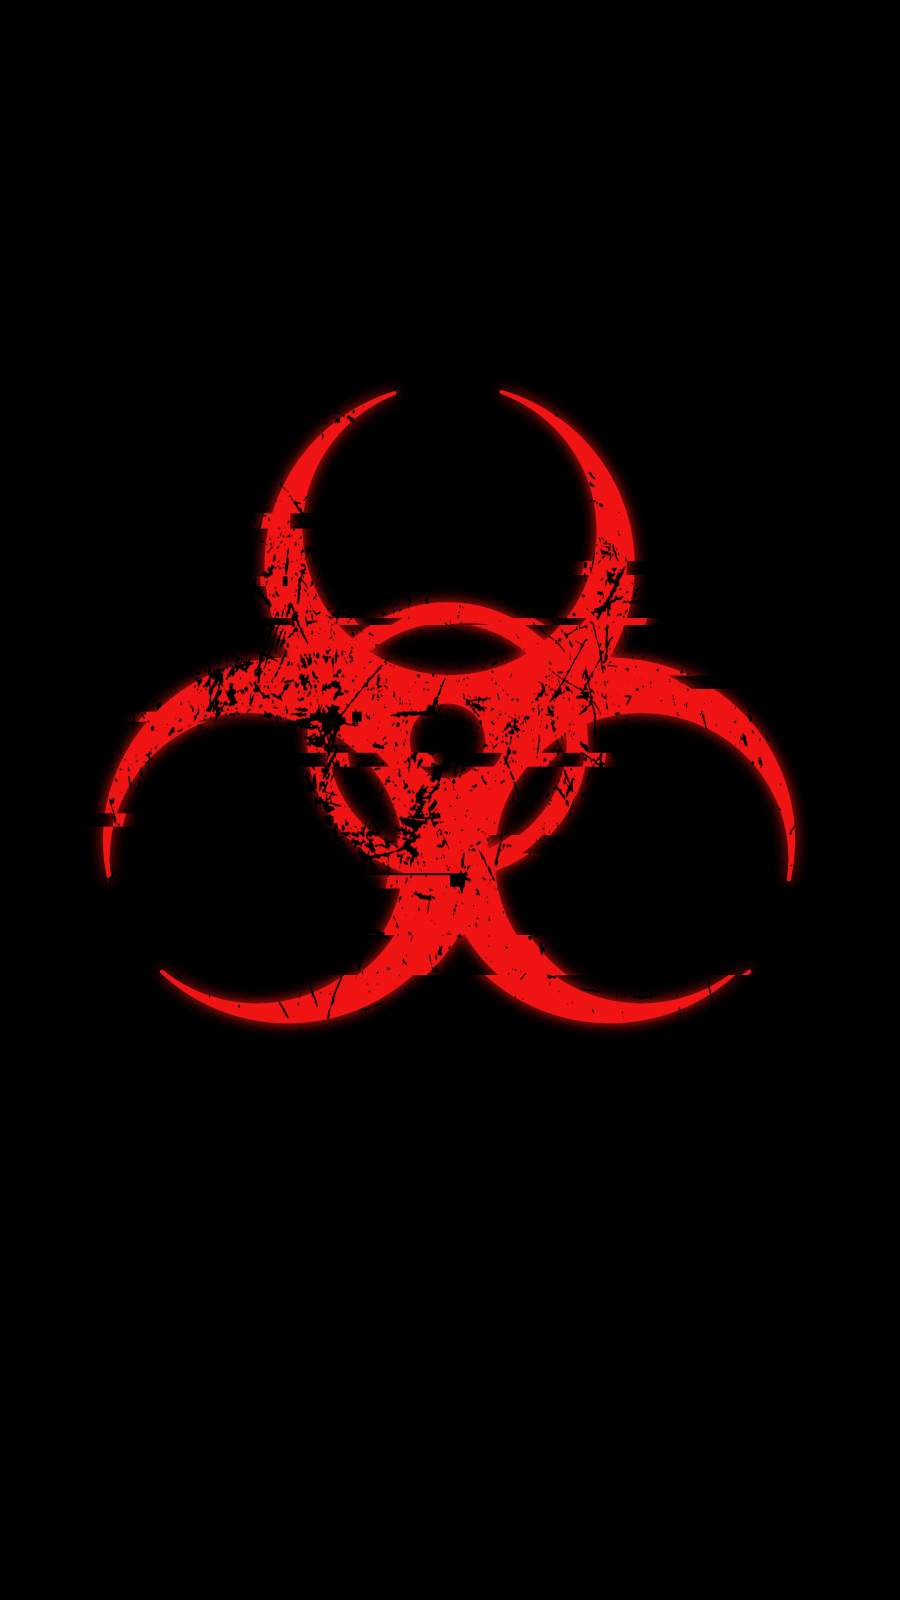 Radioactive Danger iPhone Wallpaper